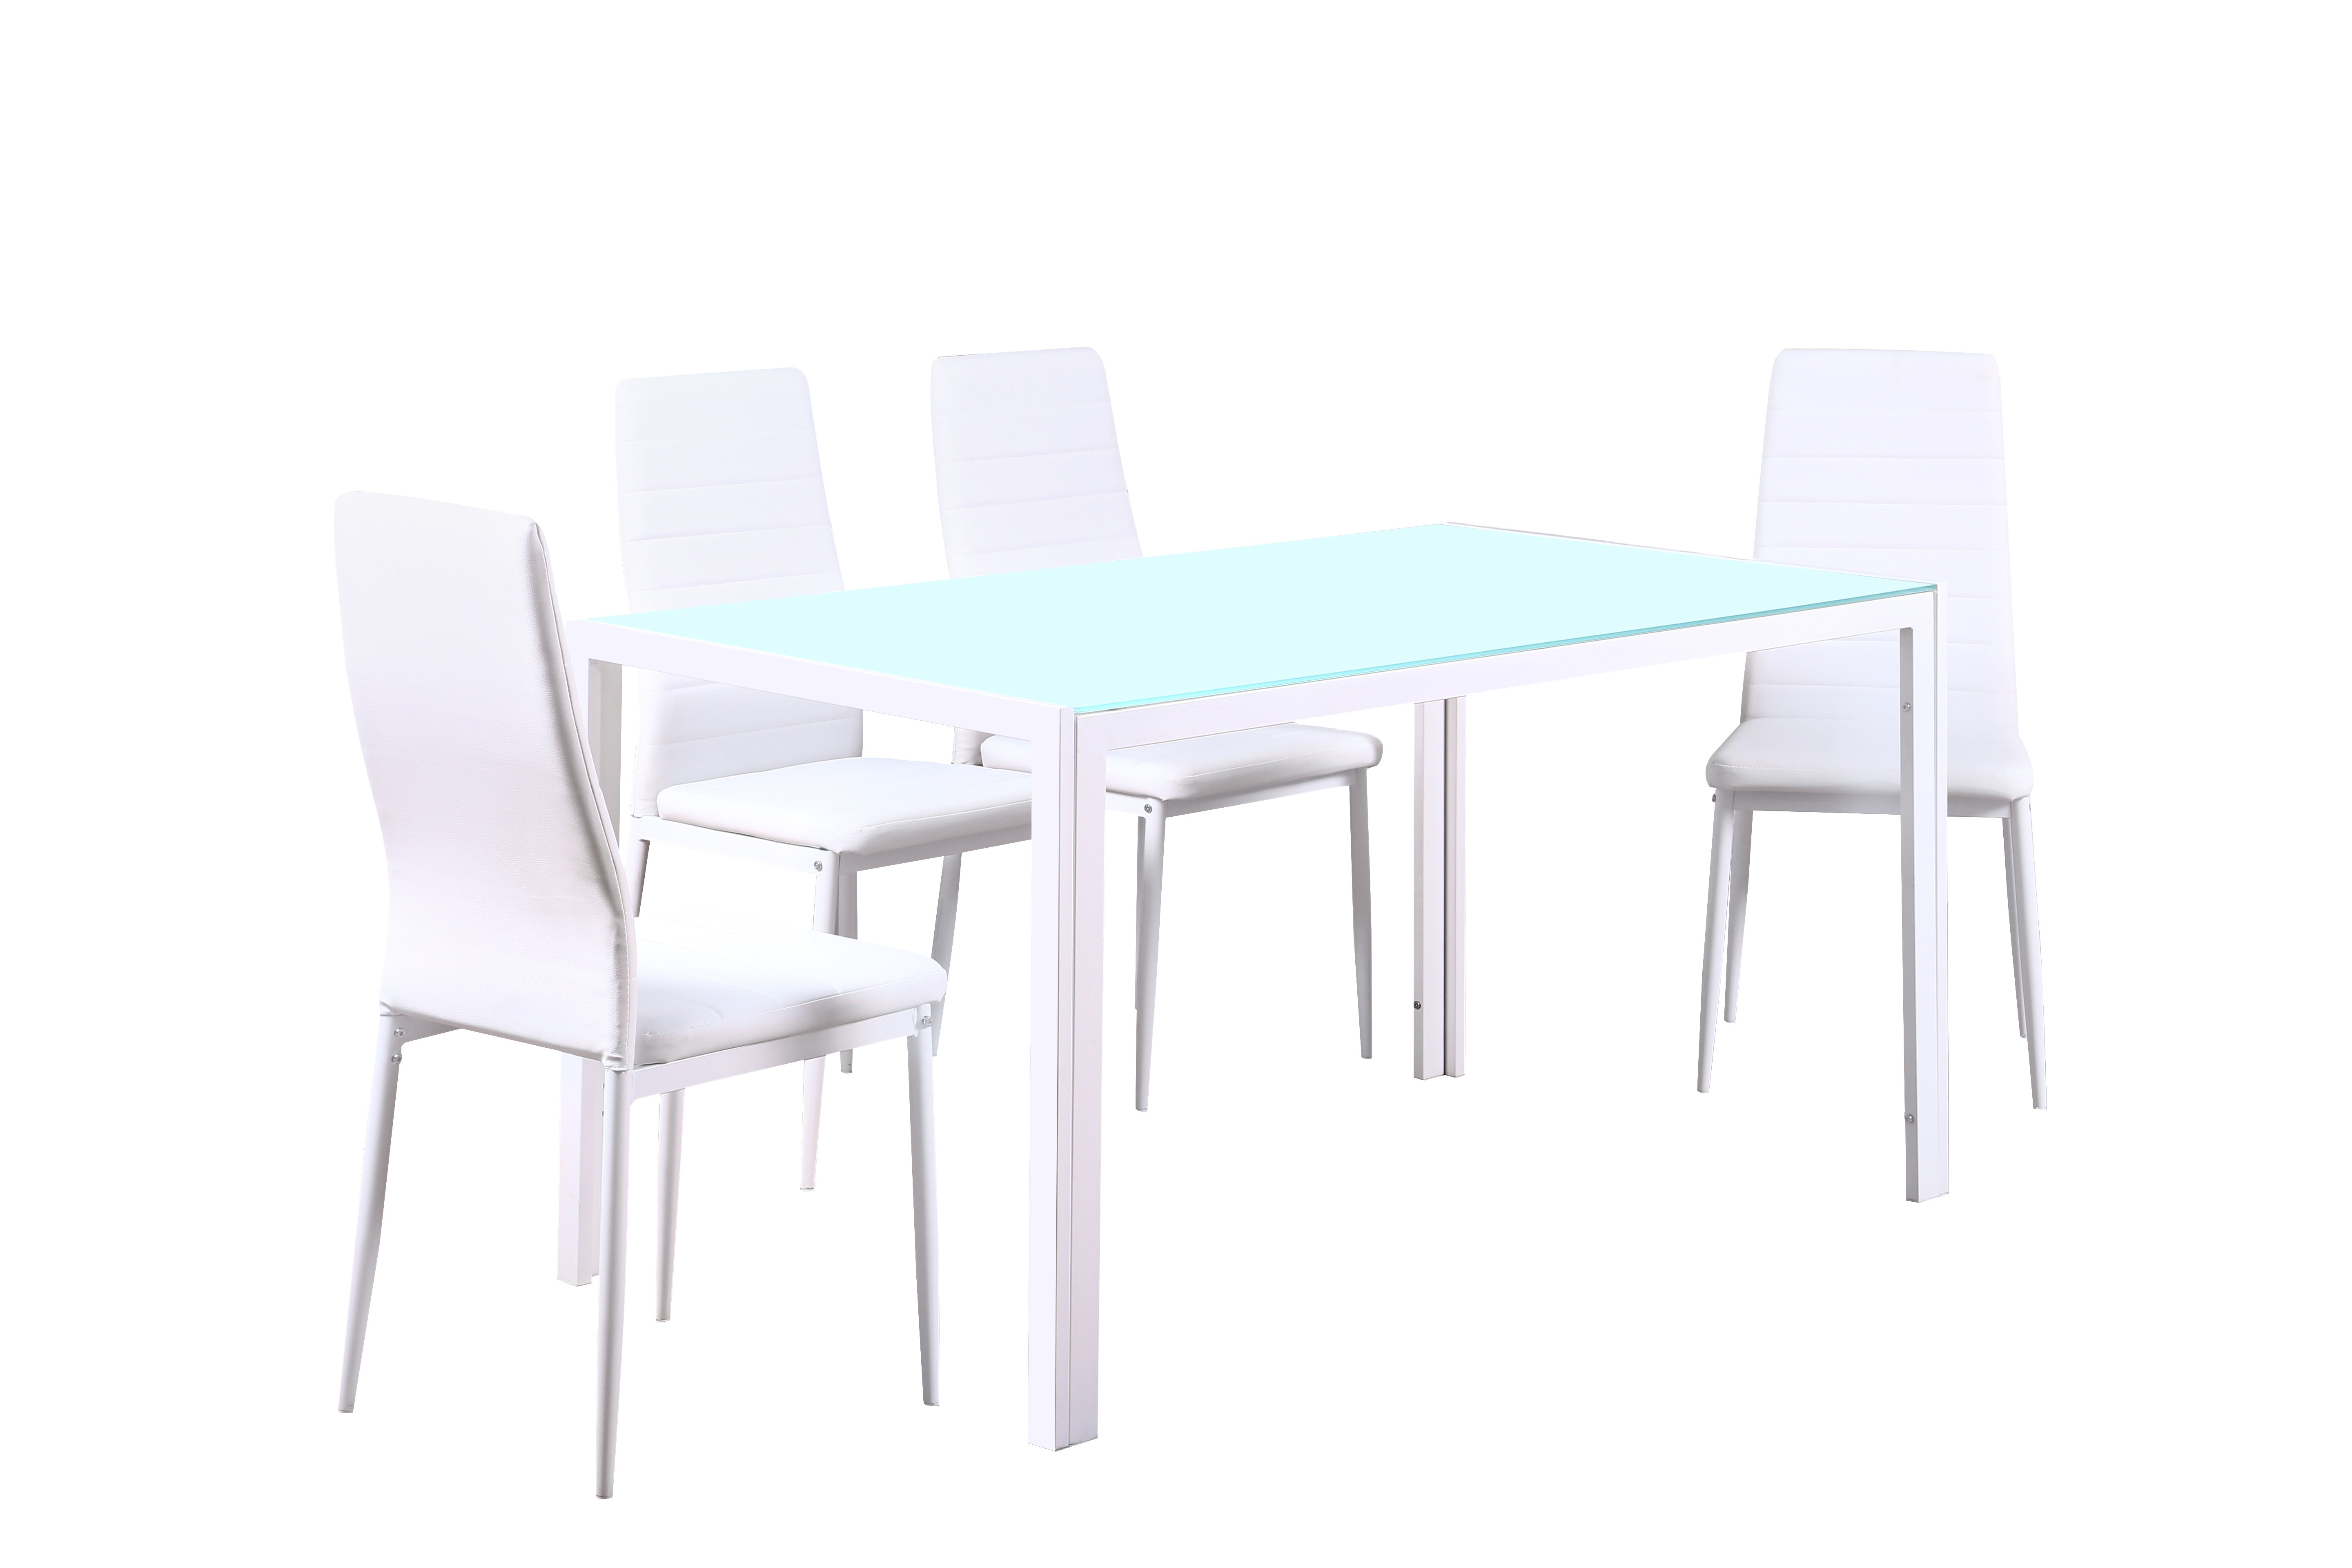 Zaugg 5 Piece Dining Set For Well Known Travon 5 Piece Dining Sets (View 20 of 20)